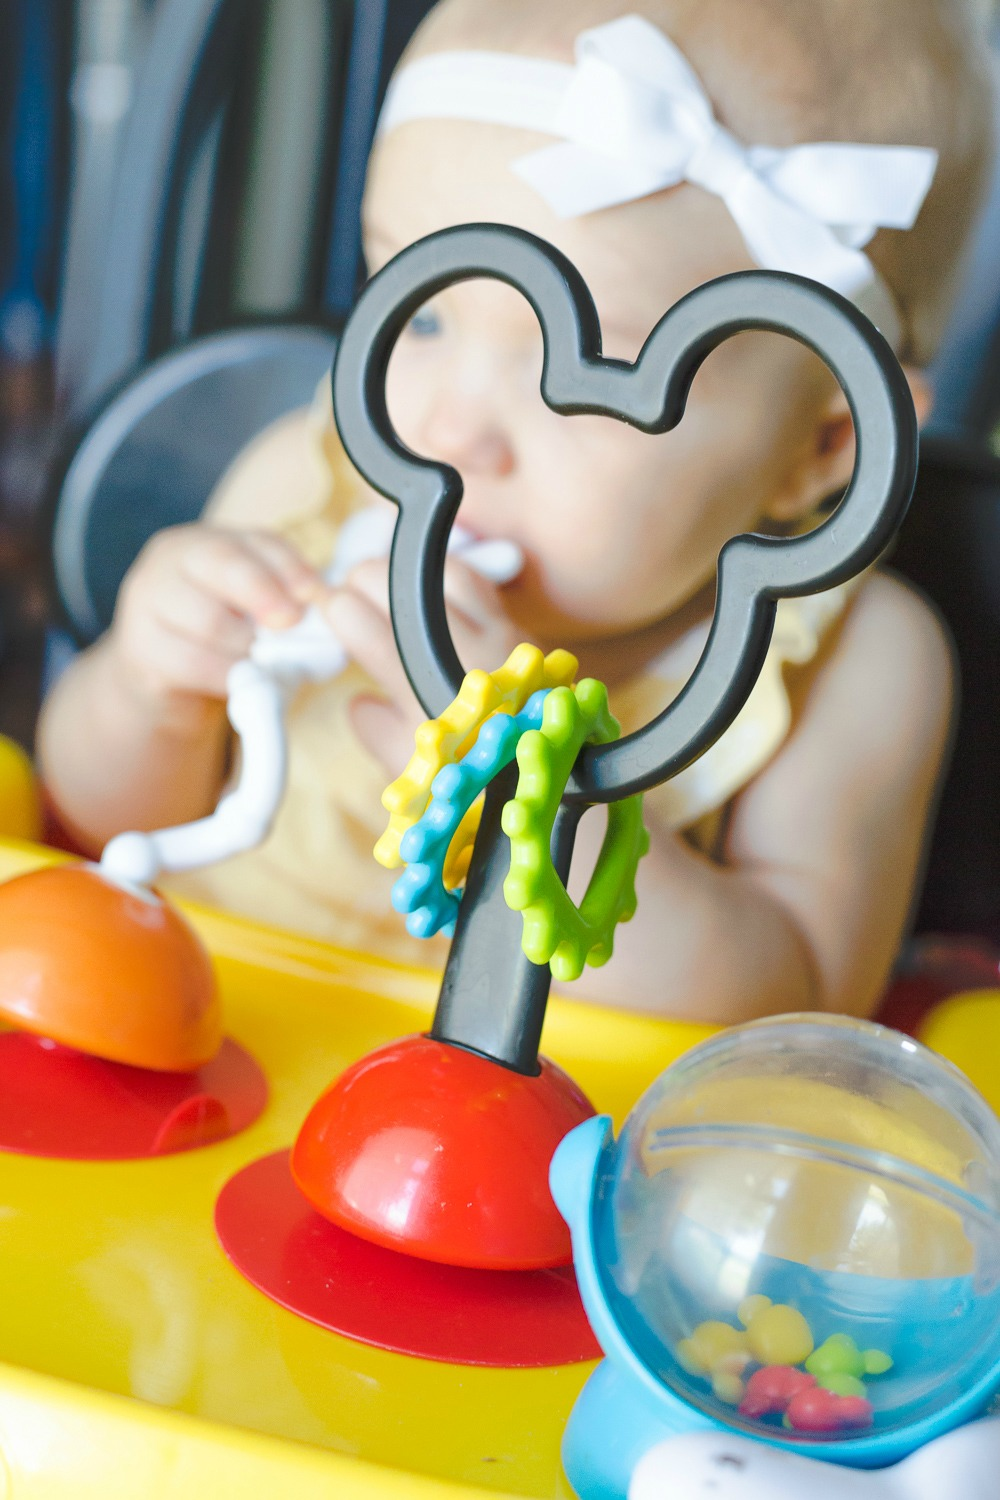 The First Years Mickey Mouse Helping Hands Feeding & Activity Seat makes for a less stressful meal time! Enjoy your family dinner again while baby stays busy playing and learning.